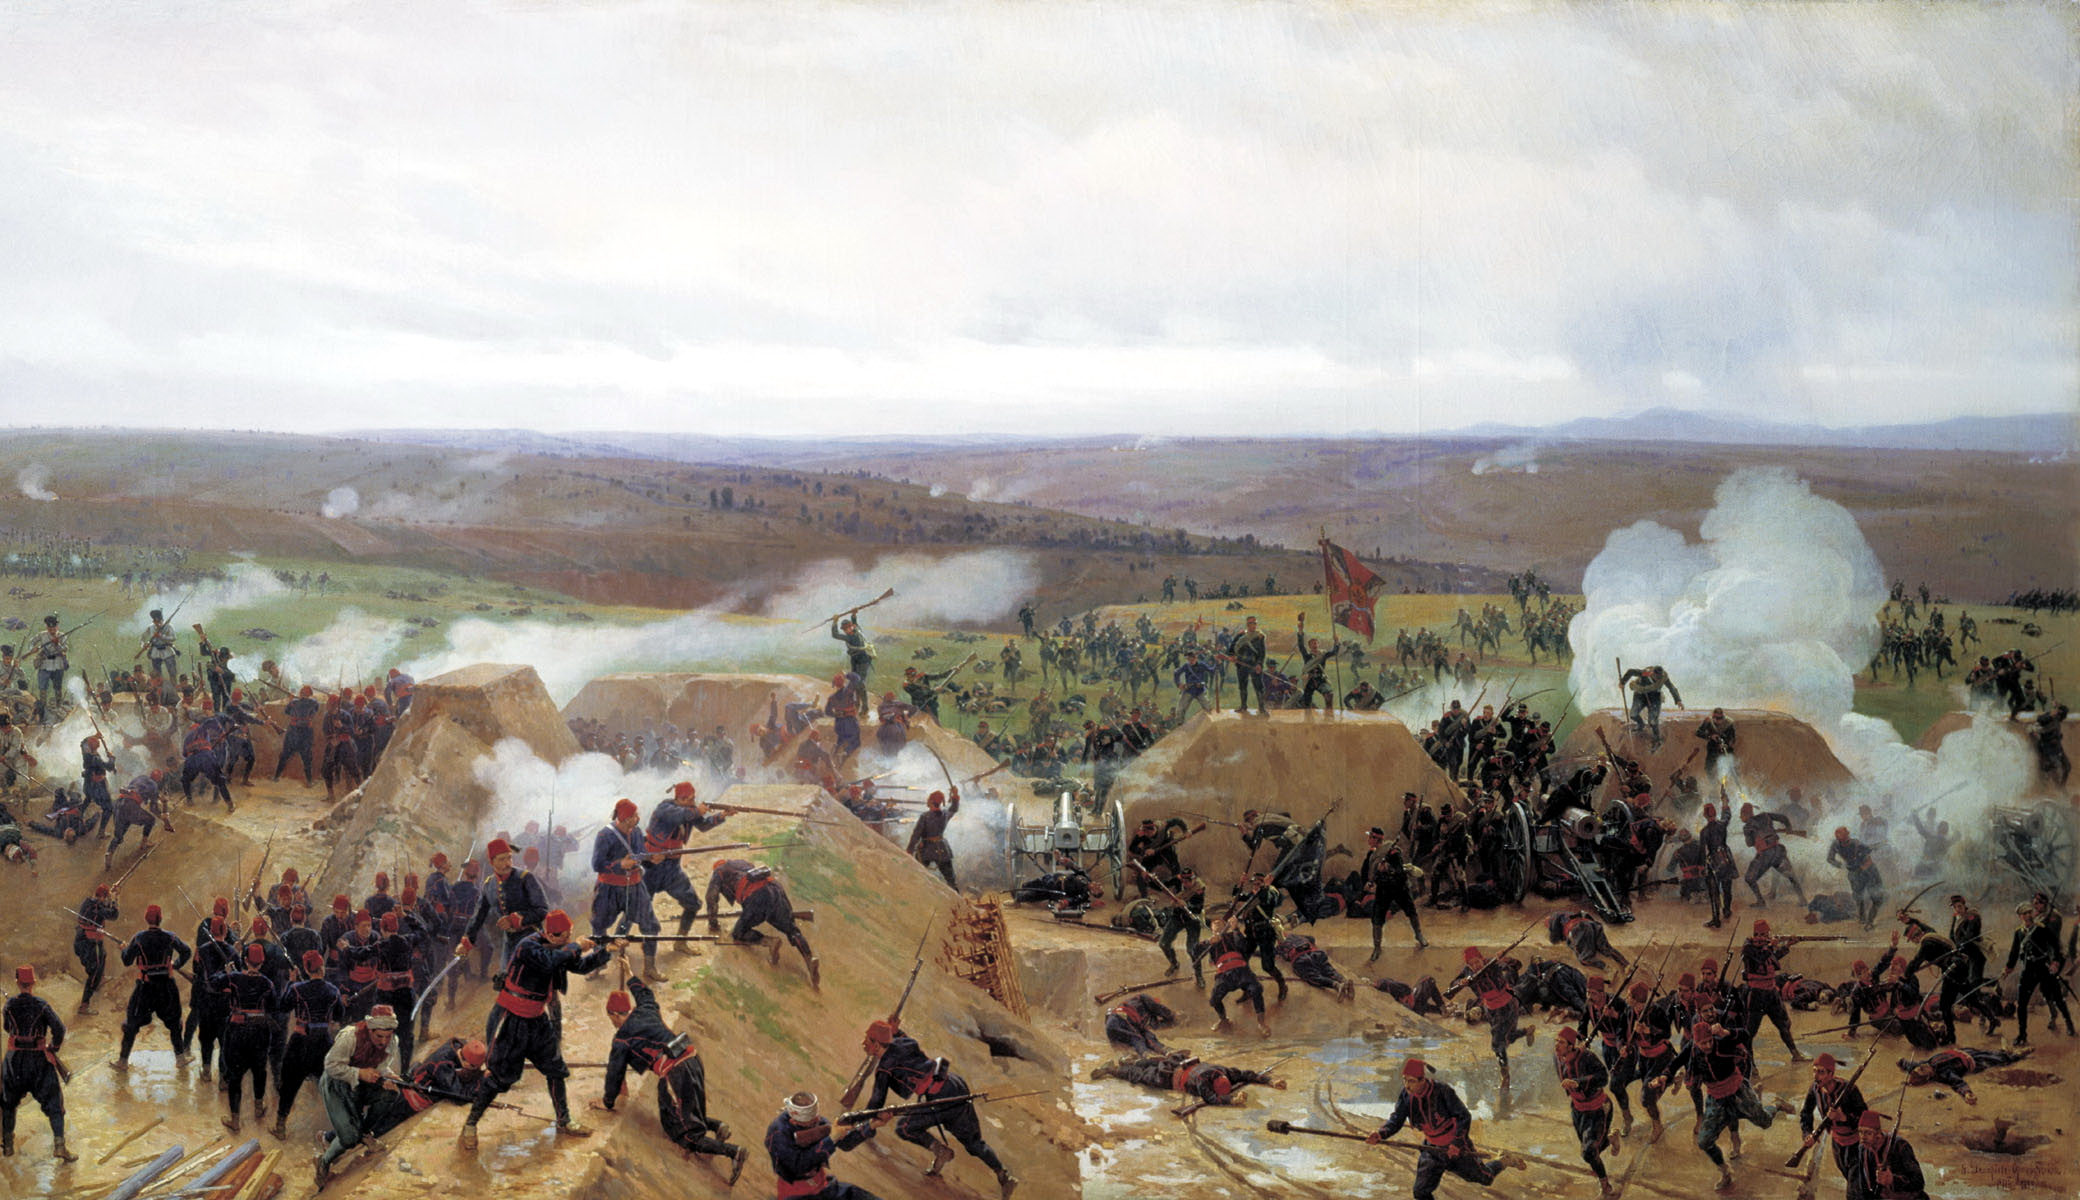 Nikolay Grivitsa-Orenburgsky. Taking of the Grivitsa redoubt by the Russians during the Russo-Turkish War of 1877–1878.